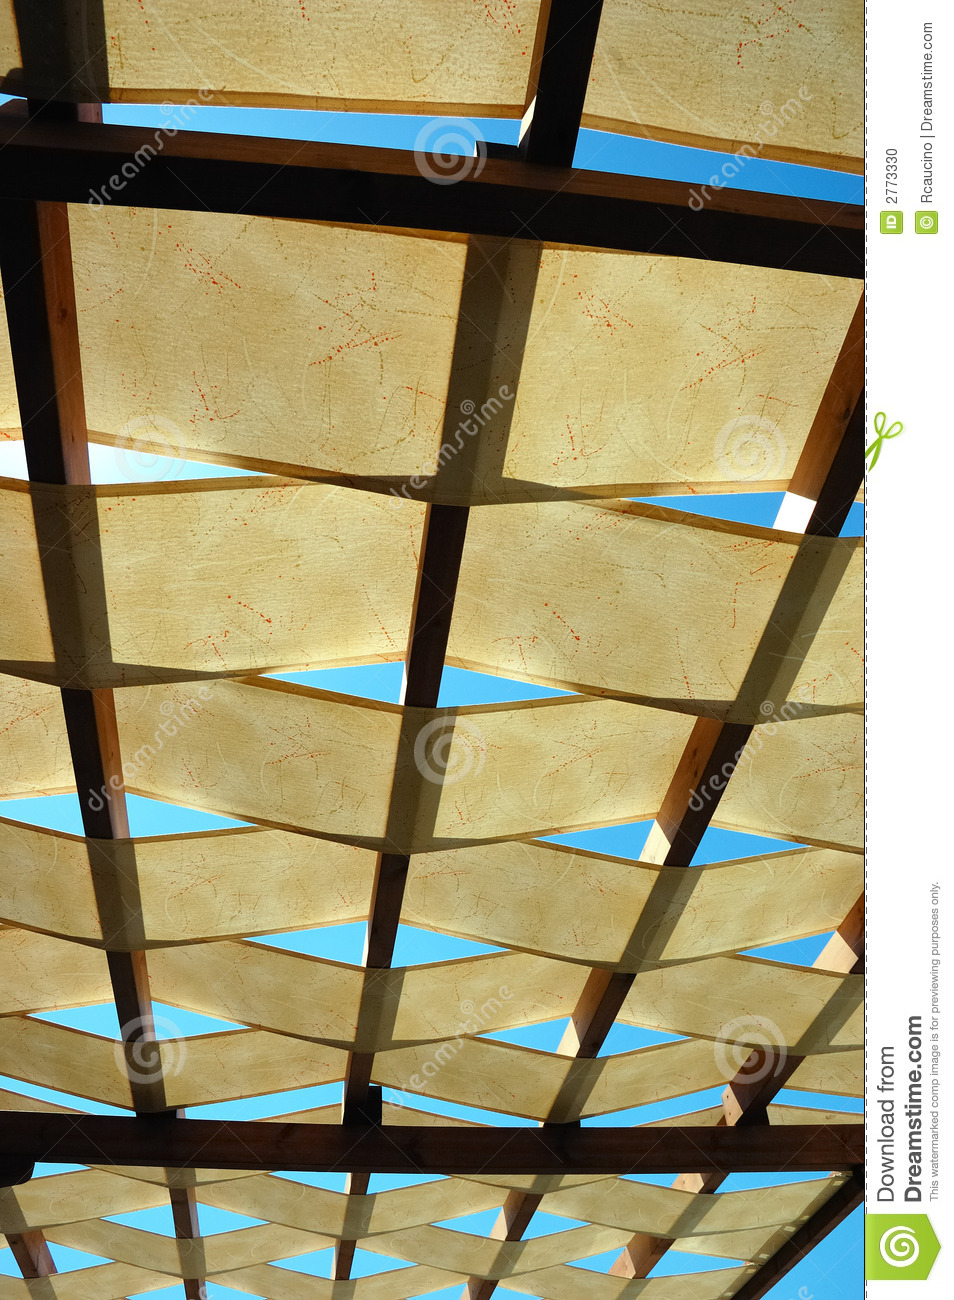 Outdoor Roof outdoor roof stock photo - image: 2773330